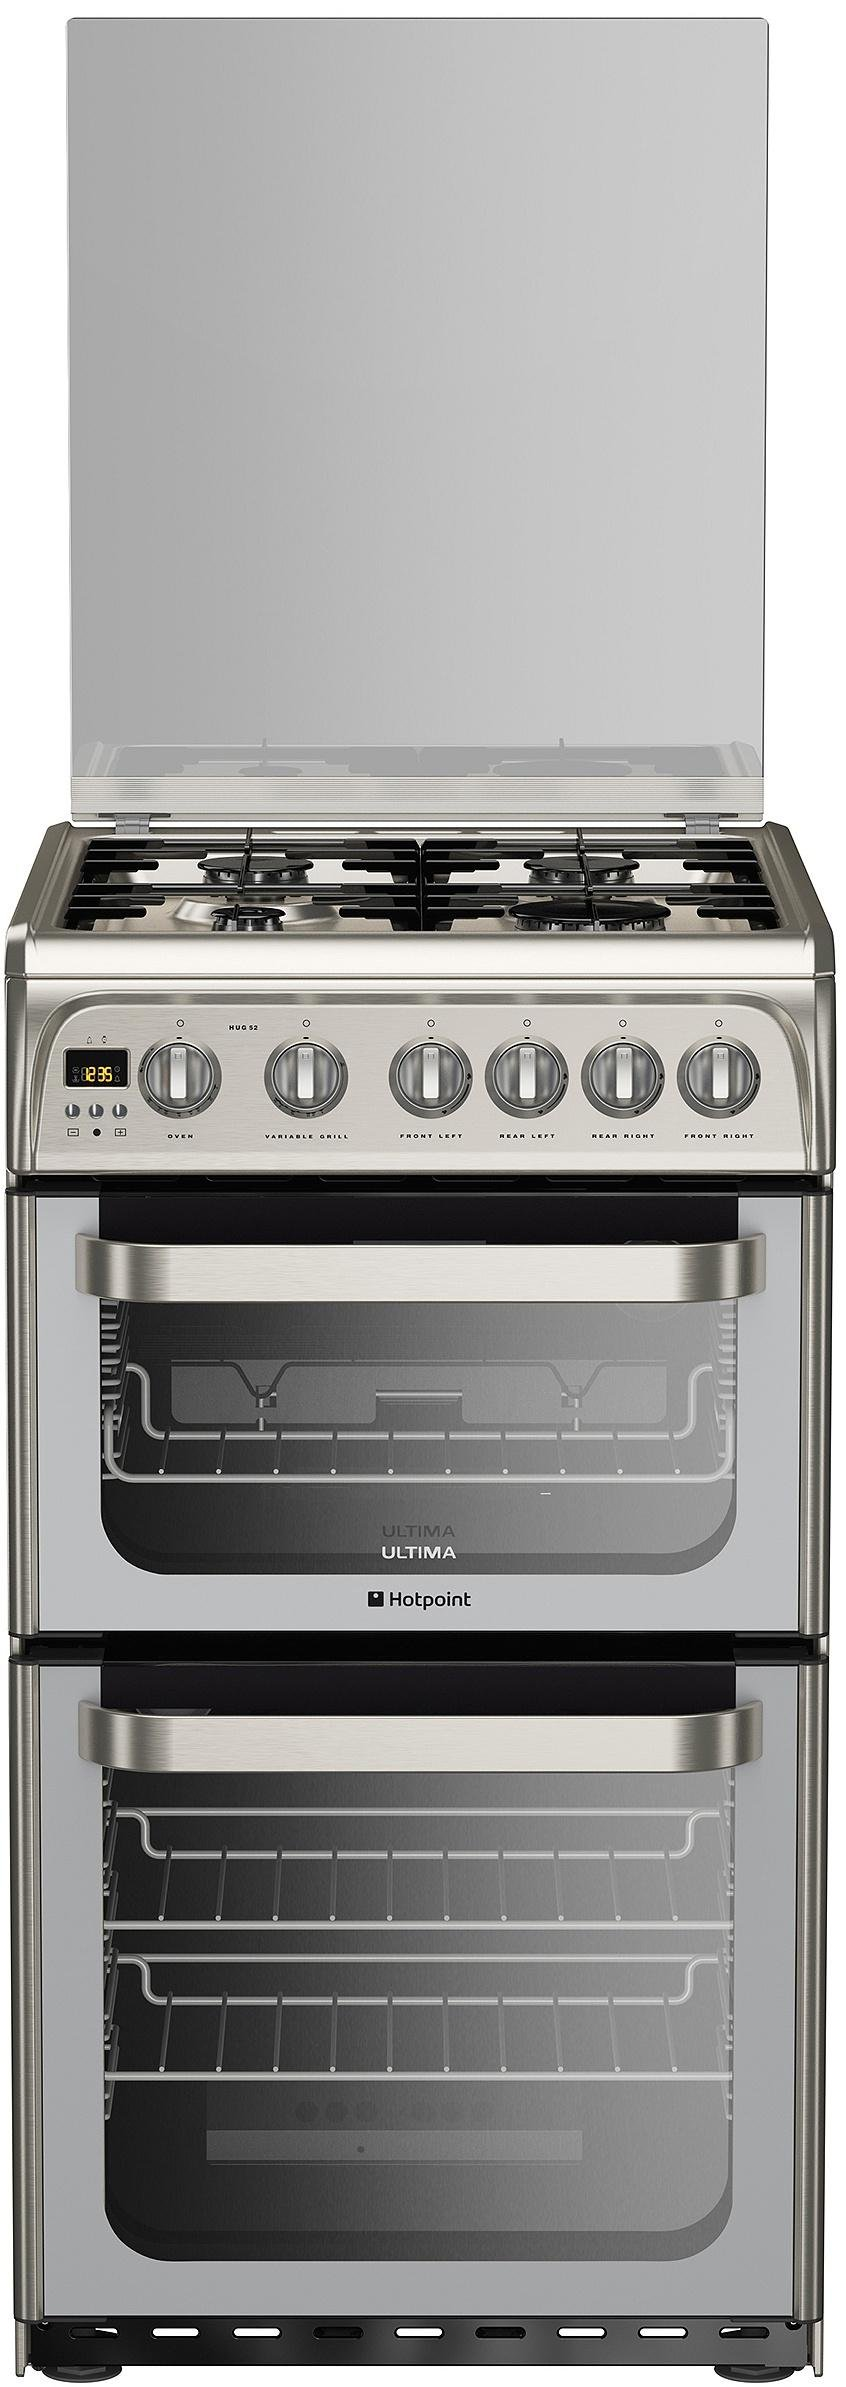 hotpoint ultima hug52x freestanding gas cooker s steel review. Black Bedroom Furniture Sets. Home Design Ideas